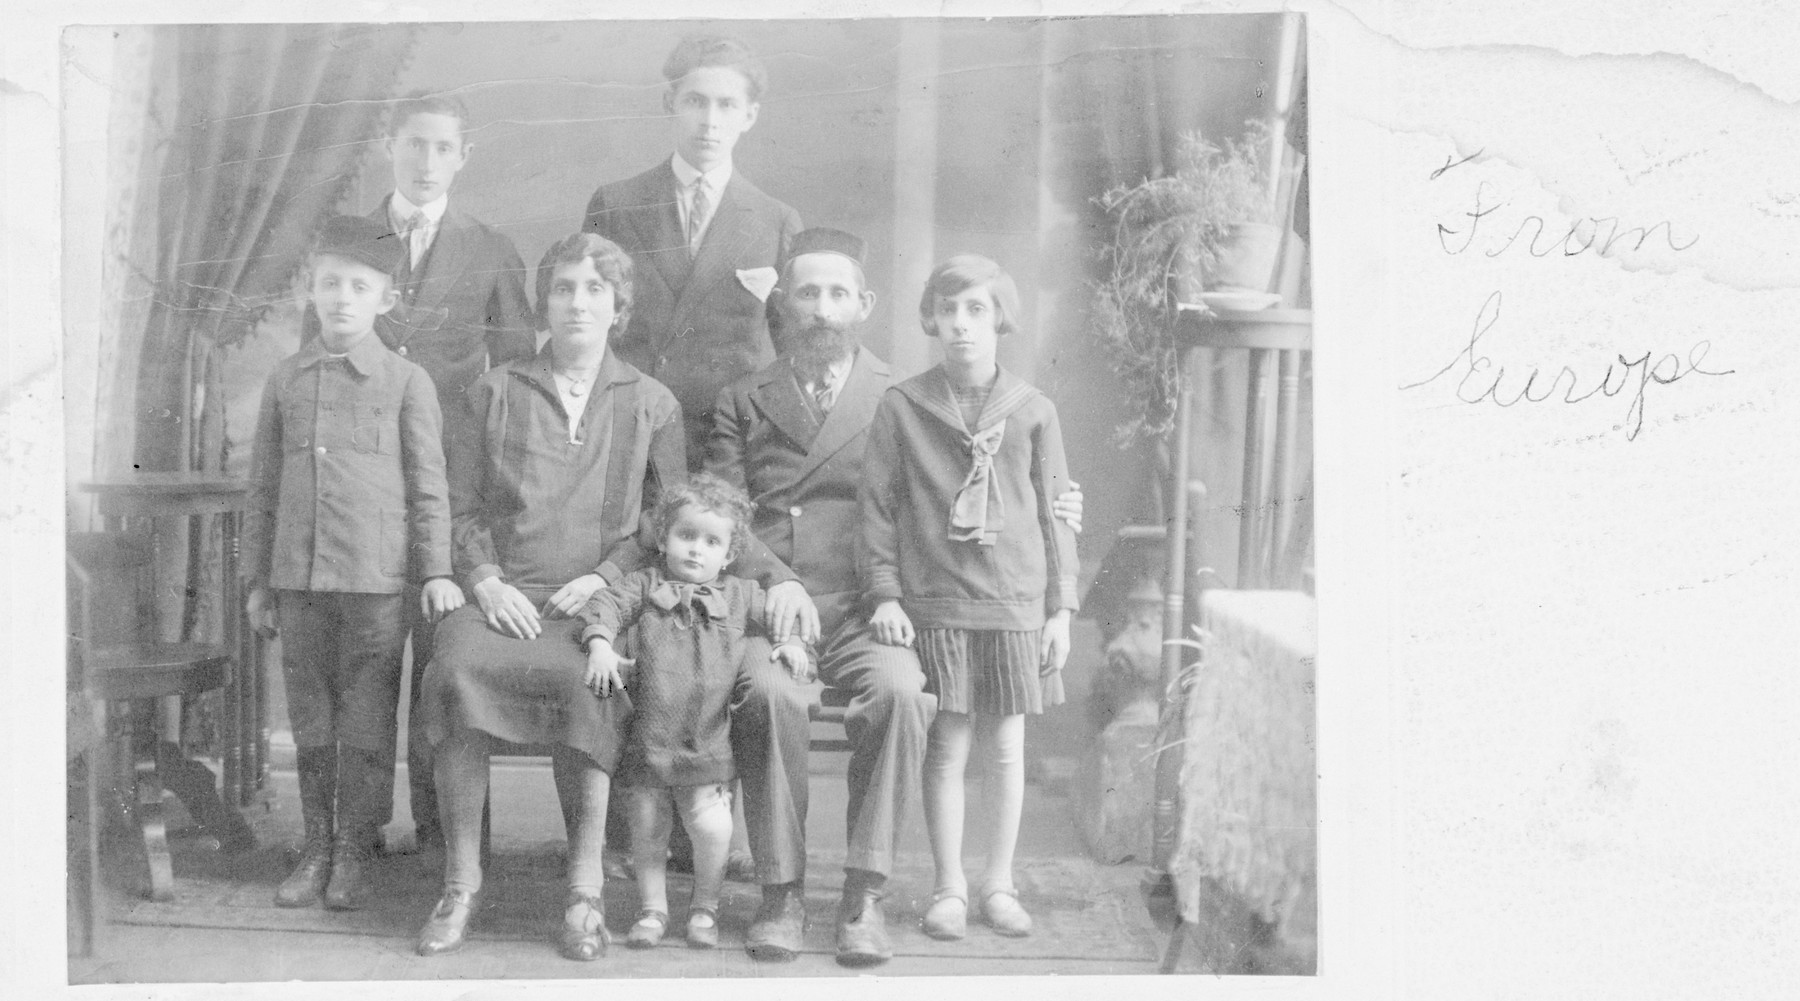 Studio portrait of Fraidl and Yehoshua Weinstein and their five children in prewar Poland.  Moshe Herschel is standing at the lower left.  The young child, Raizl, stands next to Yehoshua (Osias) Weinstein, and Miriam stands at the far right.  At the top right, stands Joseph, the oldest son.  None of the family members survived.